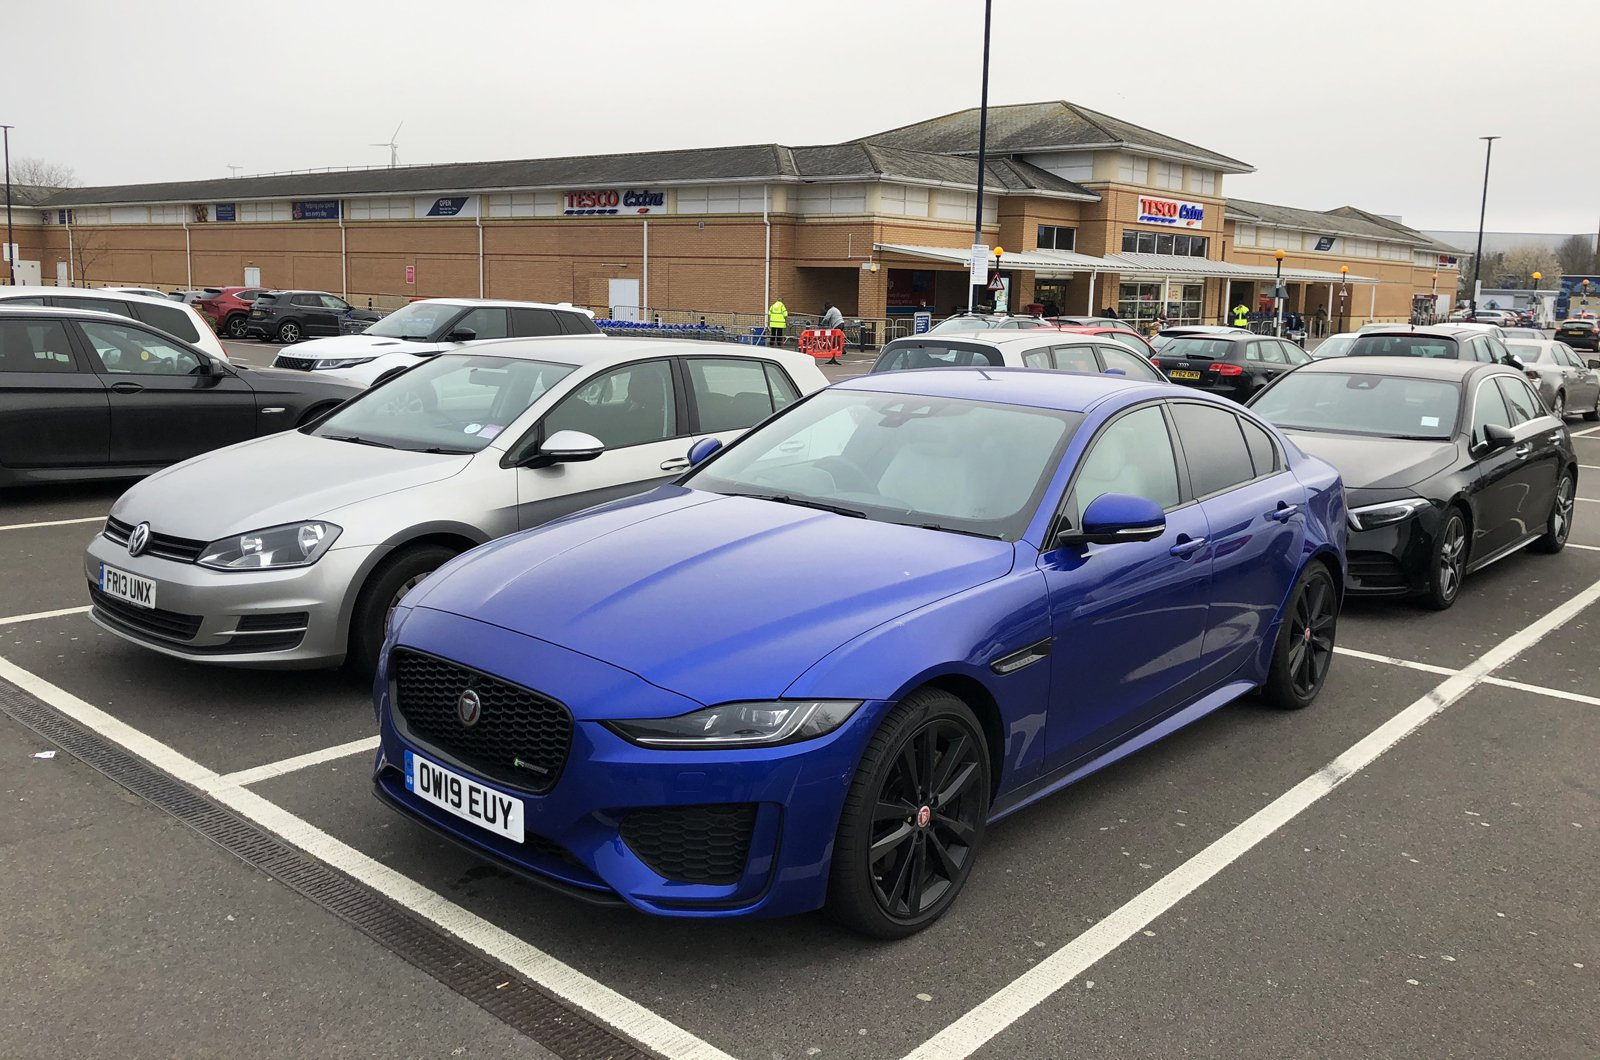 LT Jaguar XE parked at supermarket